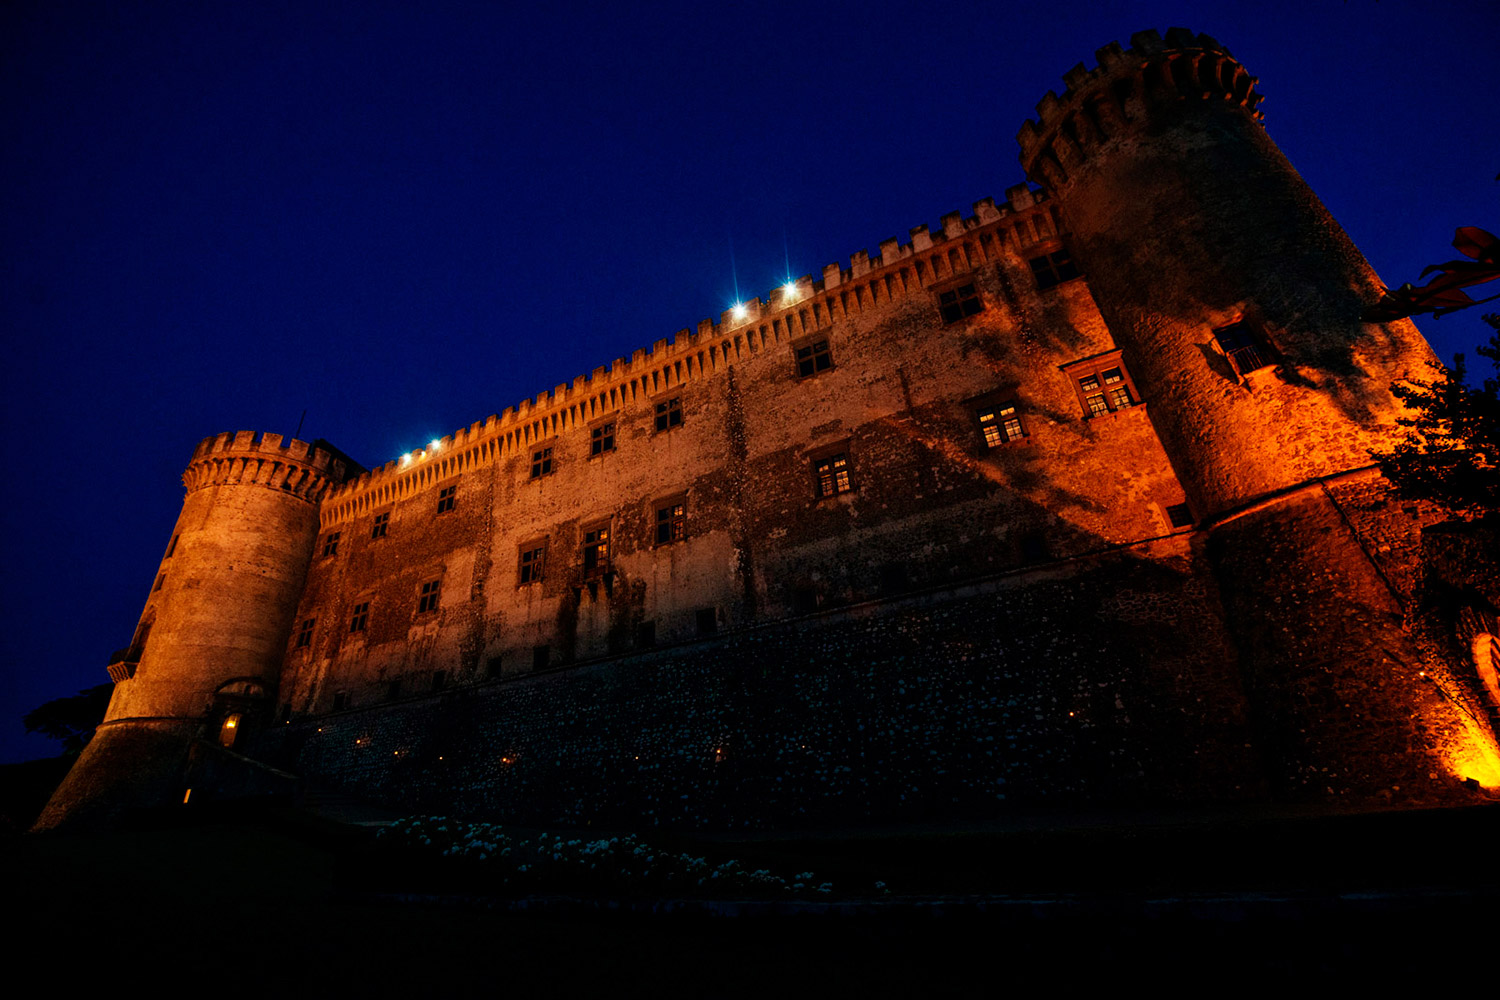 Odescalchi Castle by night